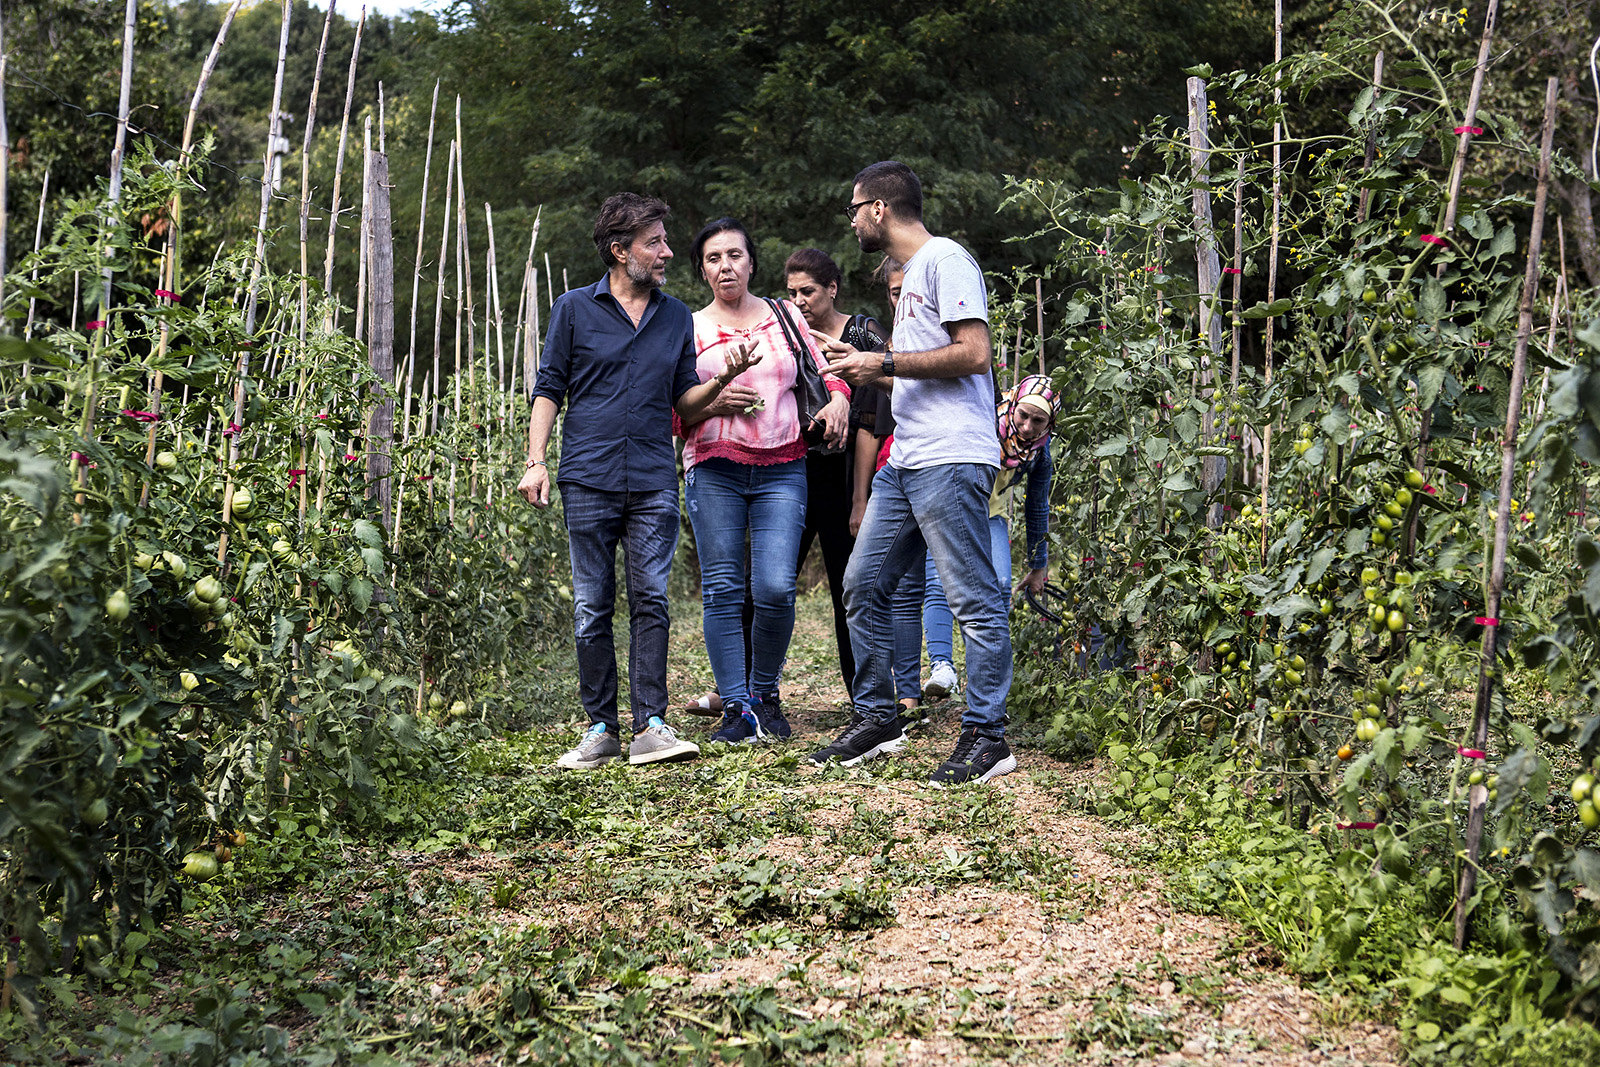 Syrian women farmers learning new skills to produce food